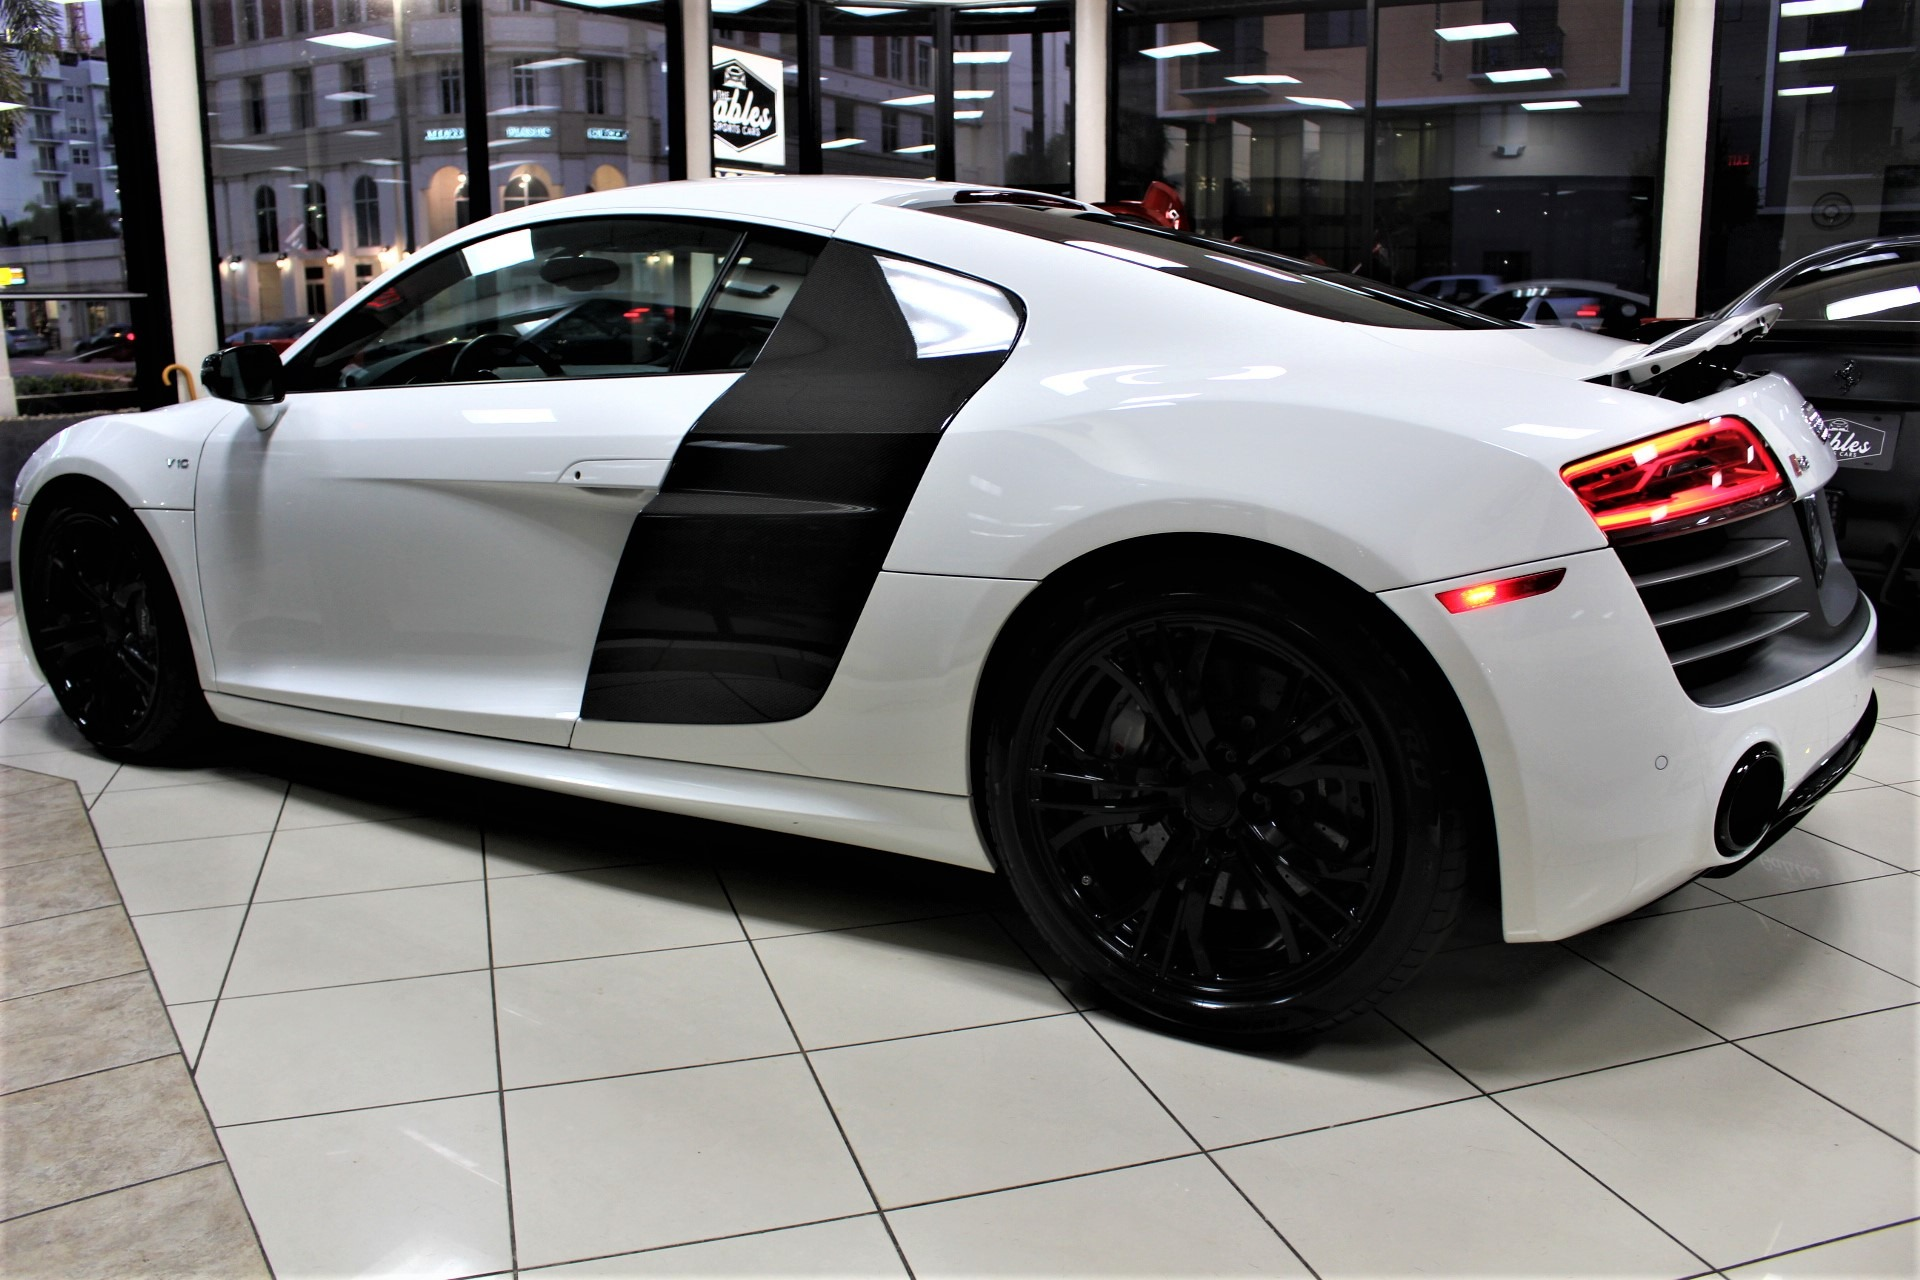 Used 2014 Audi R8 Plus 5.2 quattro for sale Sold at The Gables Sports Cars in Miami FL 33146 3